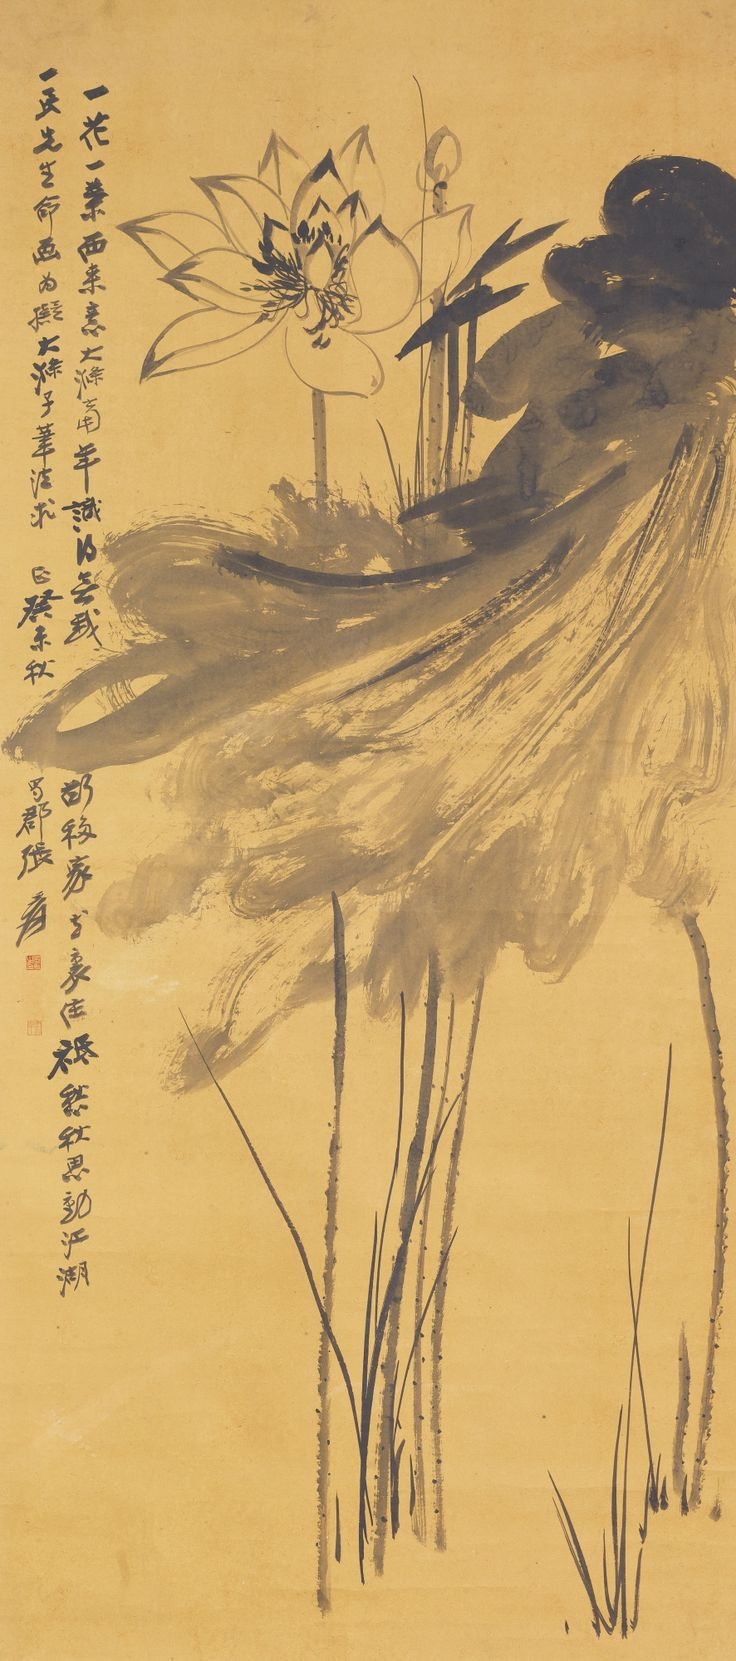 Zhang Daqian (Chang Dai-chien) 1899-1983 | Lot | Sotheby's